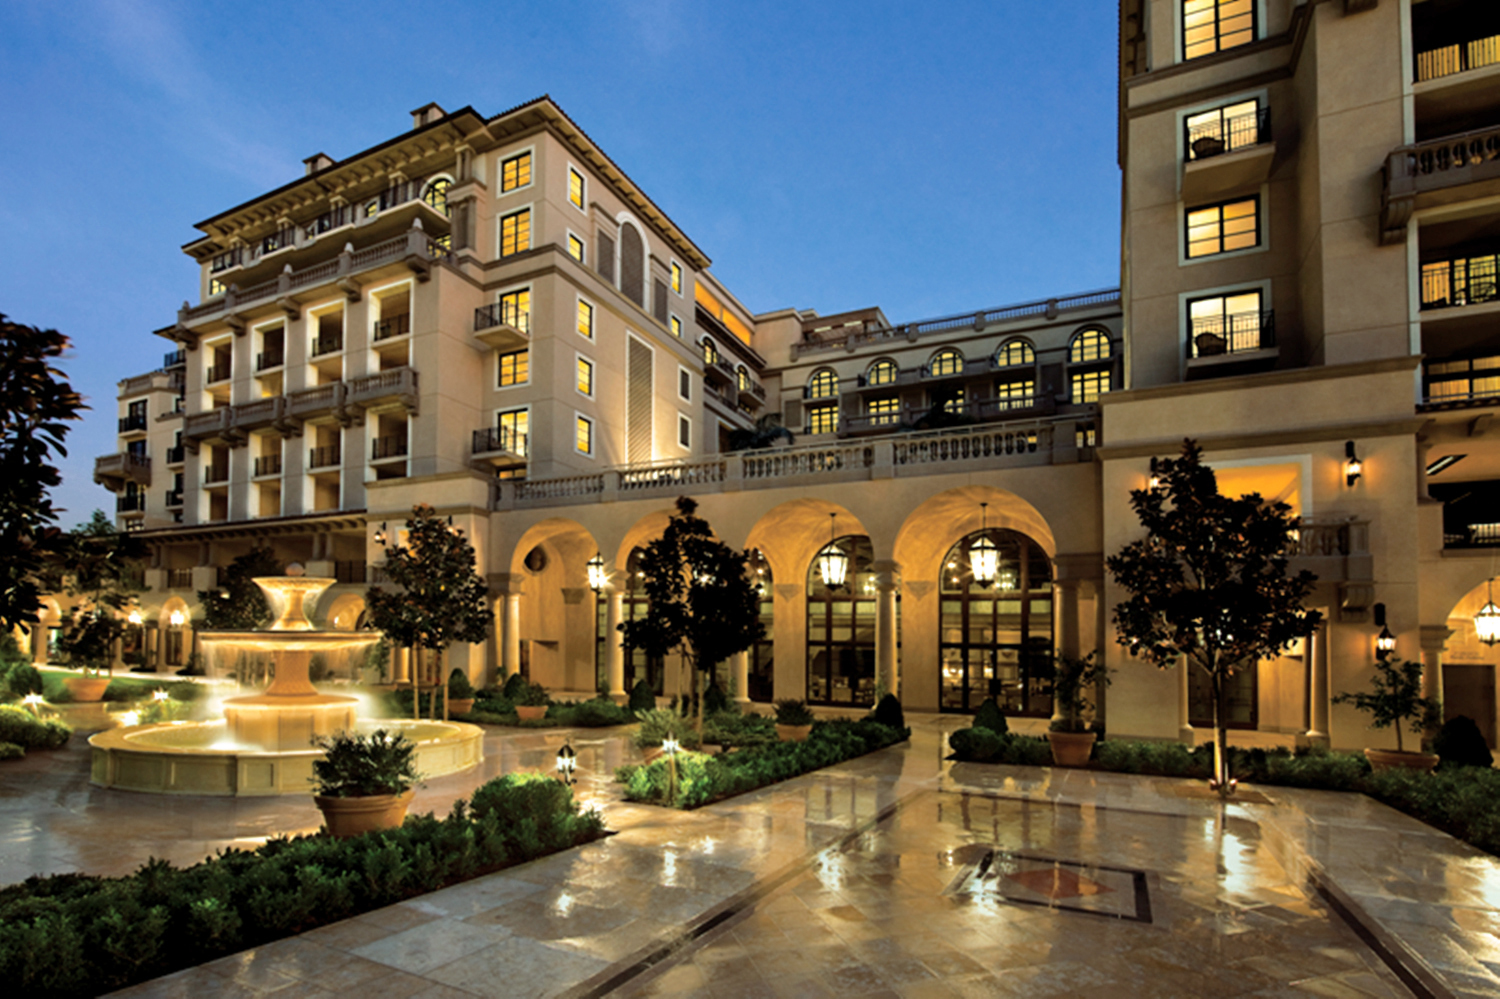 Luxury hotels three peninsula hotels find fame in the u s for Hotel luxury world